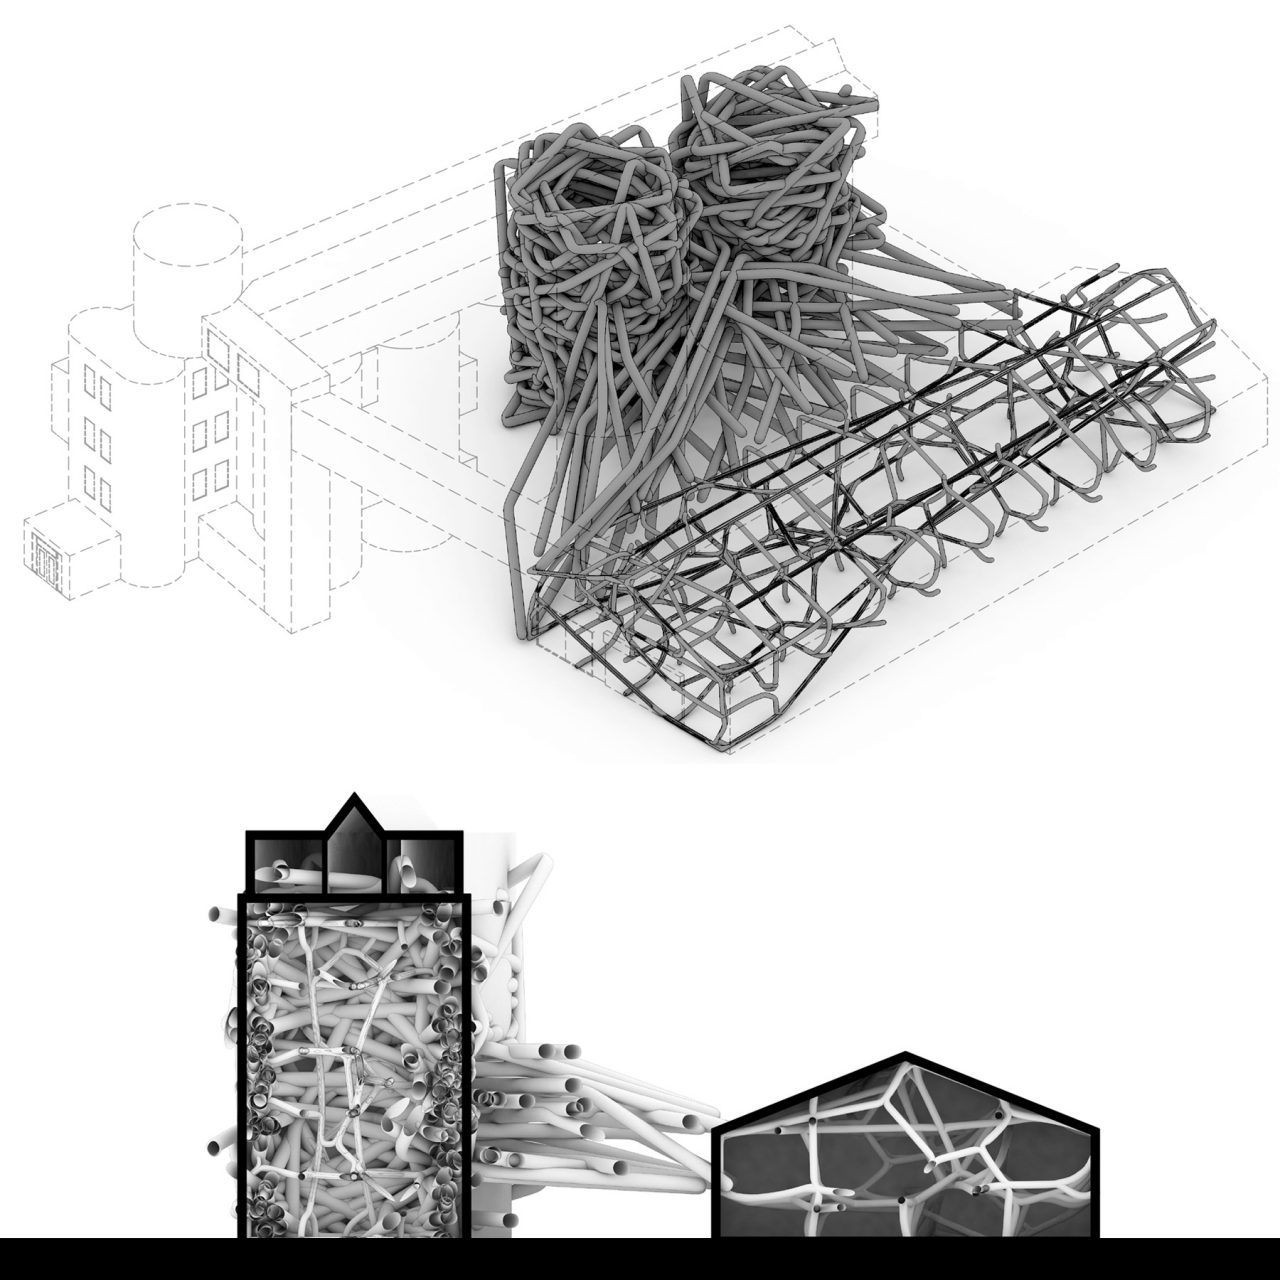 axonometric and sections drawings with thread-like structures rendered